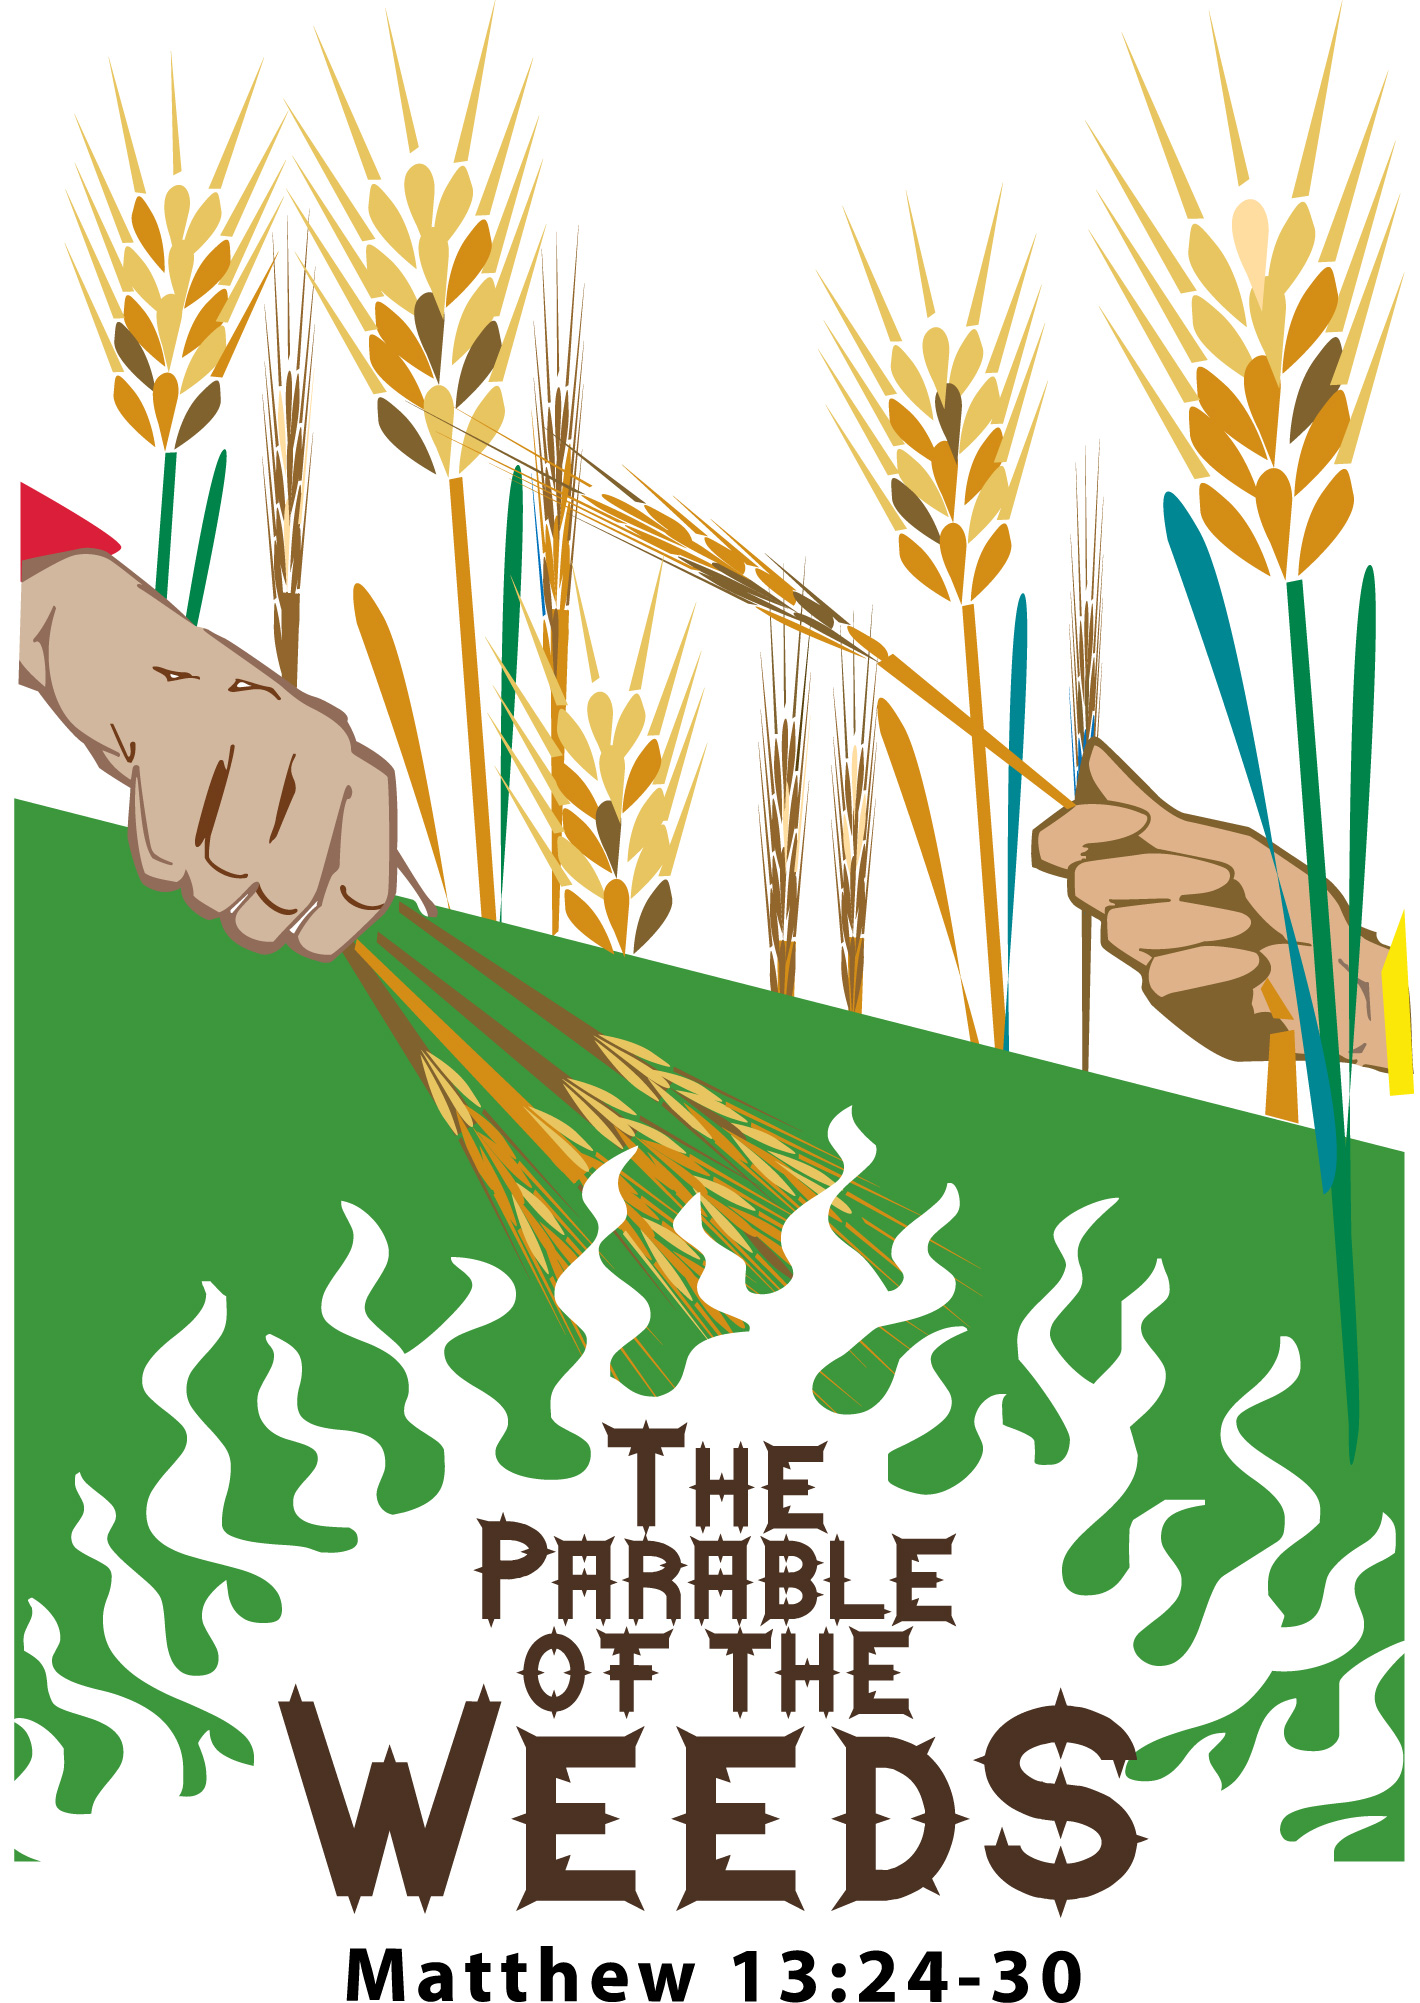 The Parable of the Wheat and the Weeds.